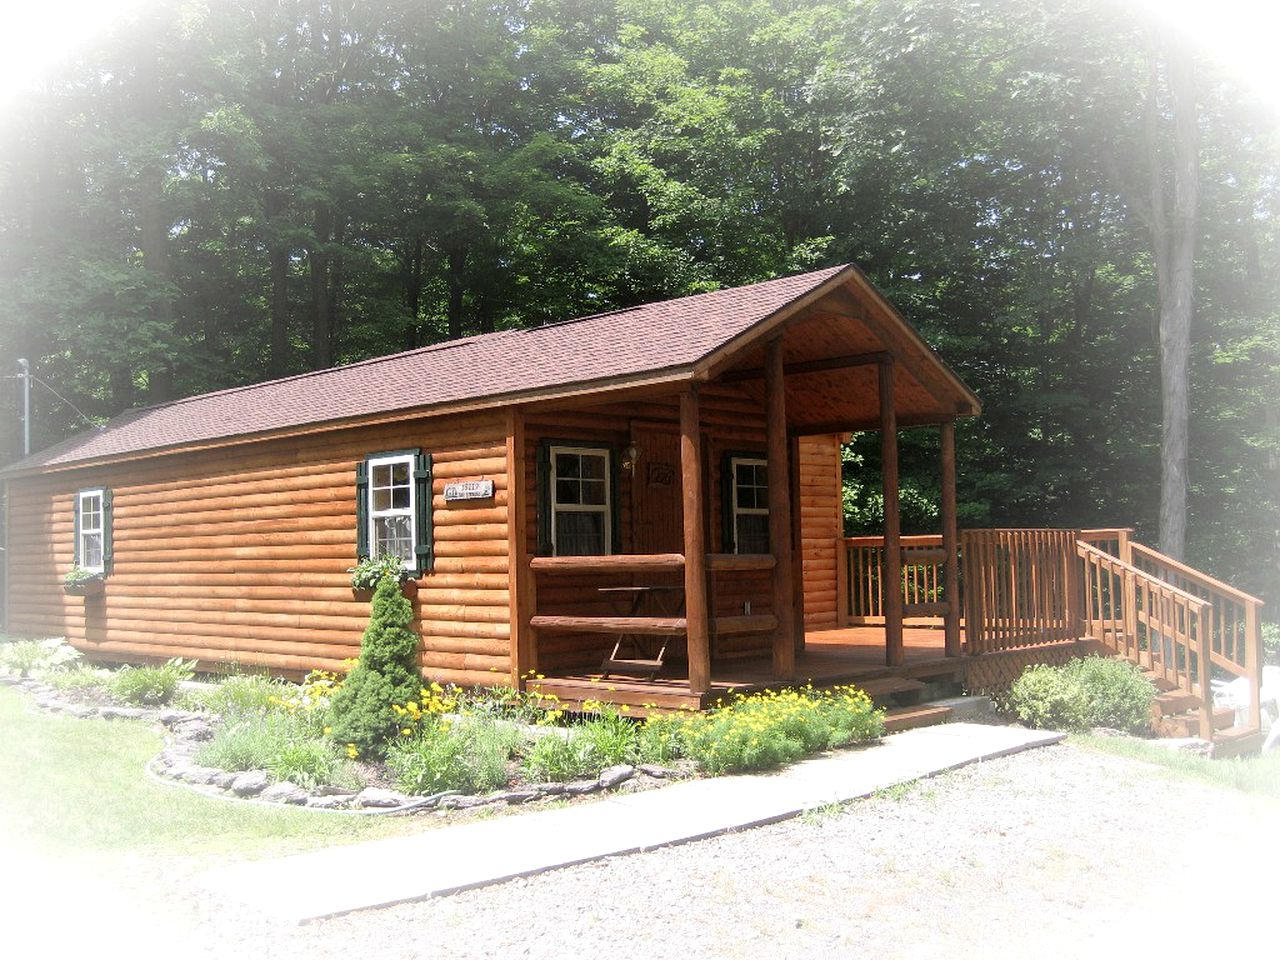 Cabins (Sackets Harbor, New York, United States)